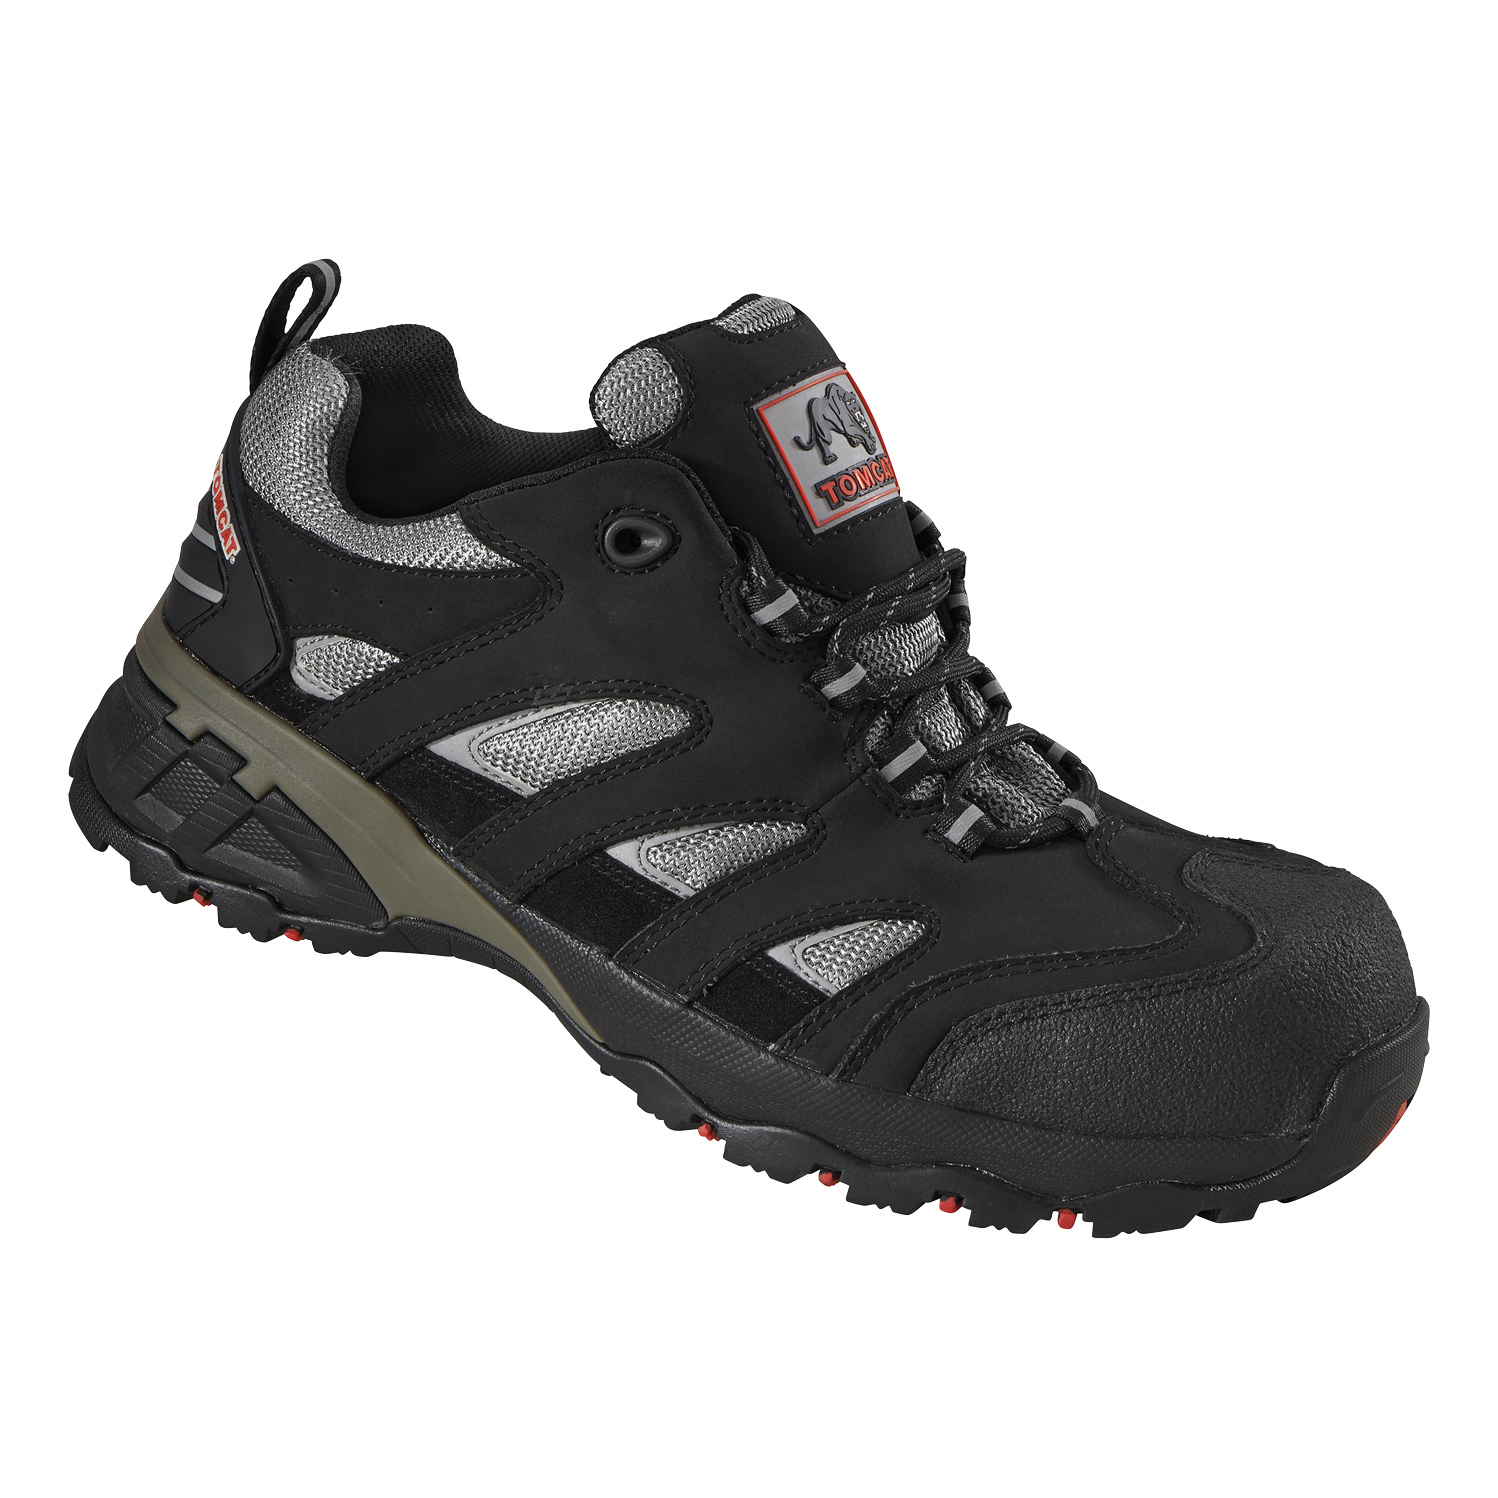 Rockfall Maine Trainer F/Glass Toecap & Flexi-Midsole Size 7 Black/Silver Ref TC130-7 *5-7 Day Leadtime*